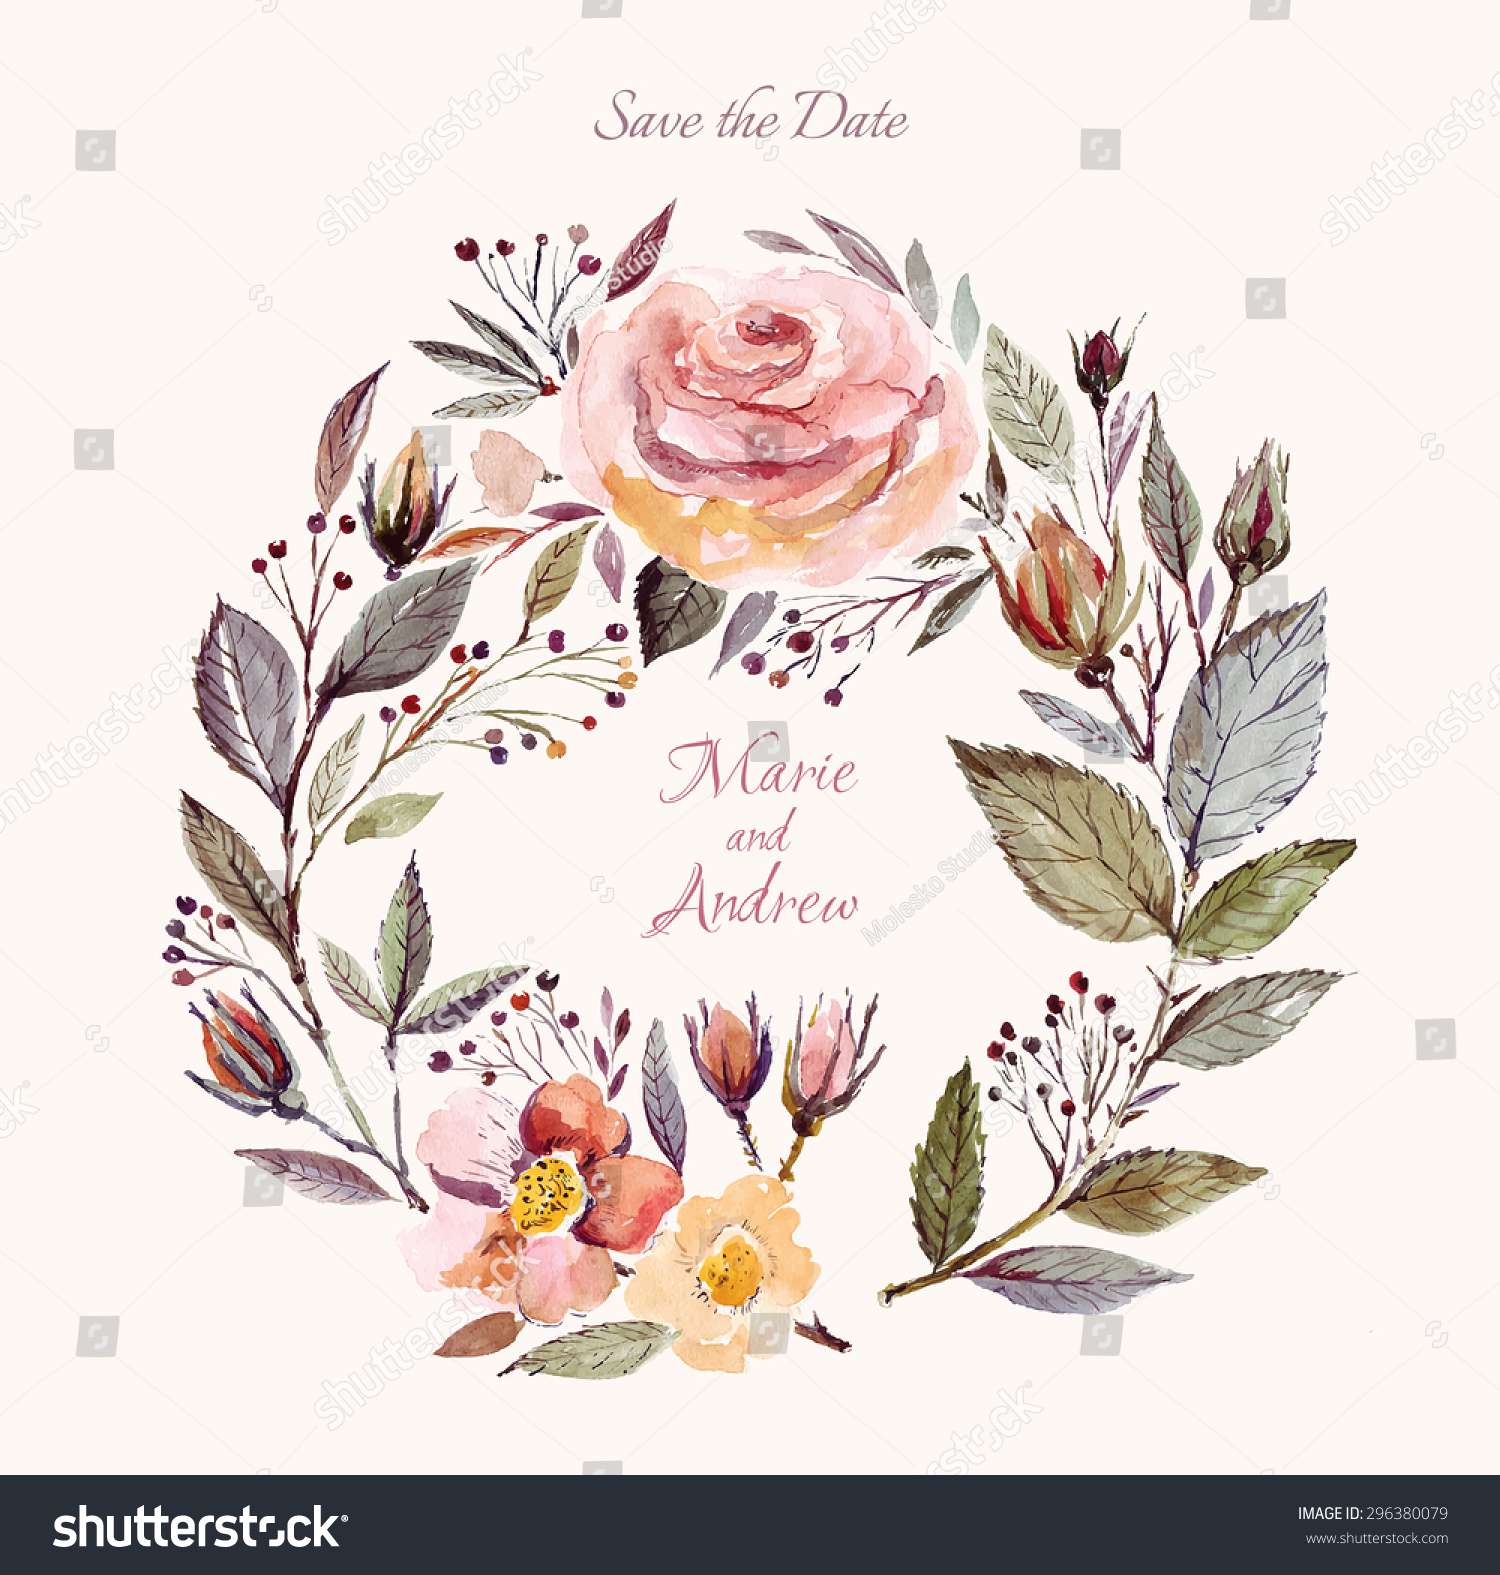 Image Result For Wedding Invitation On Email